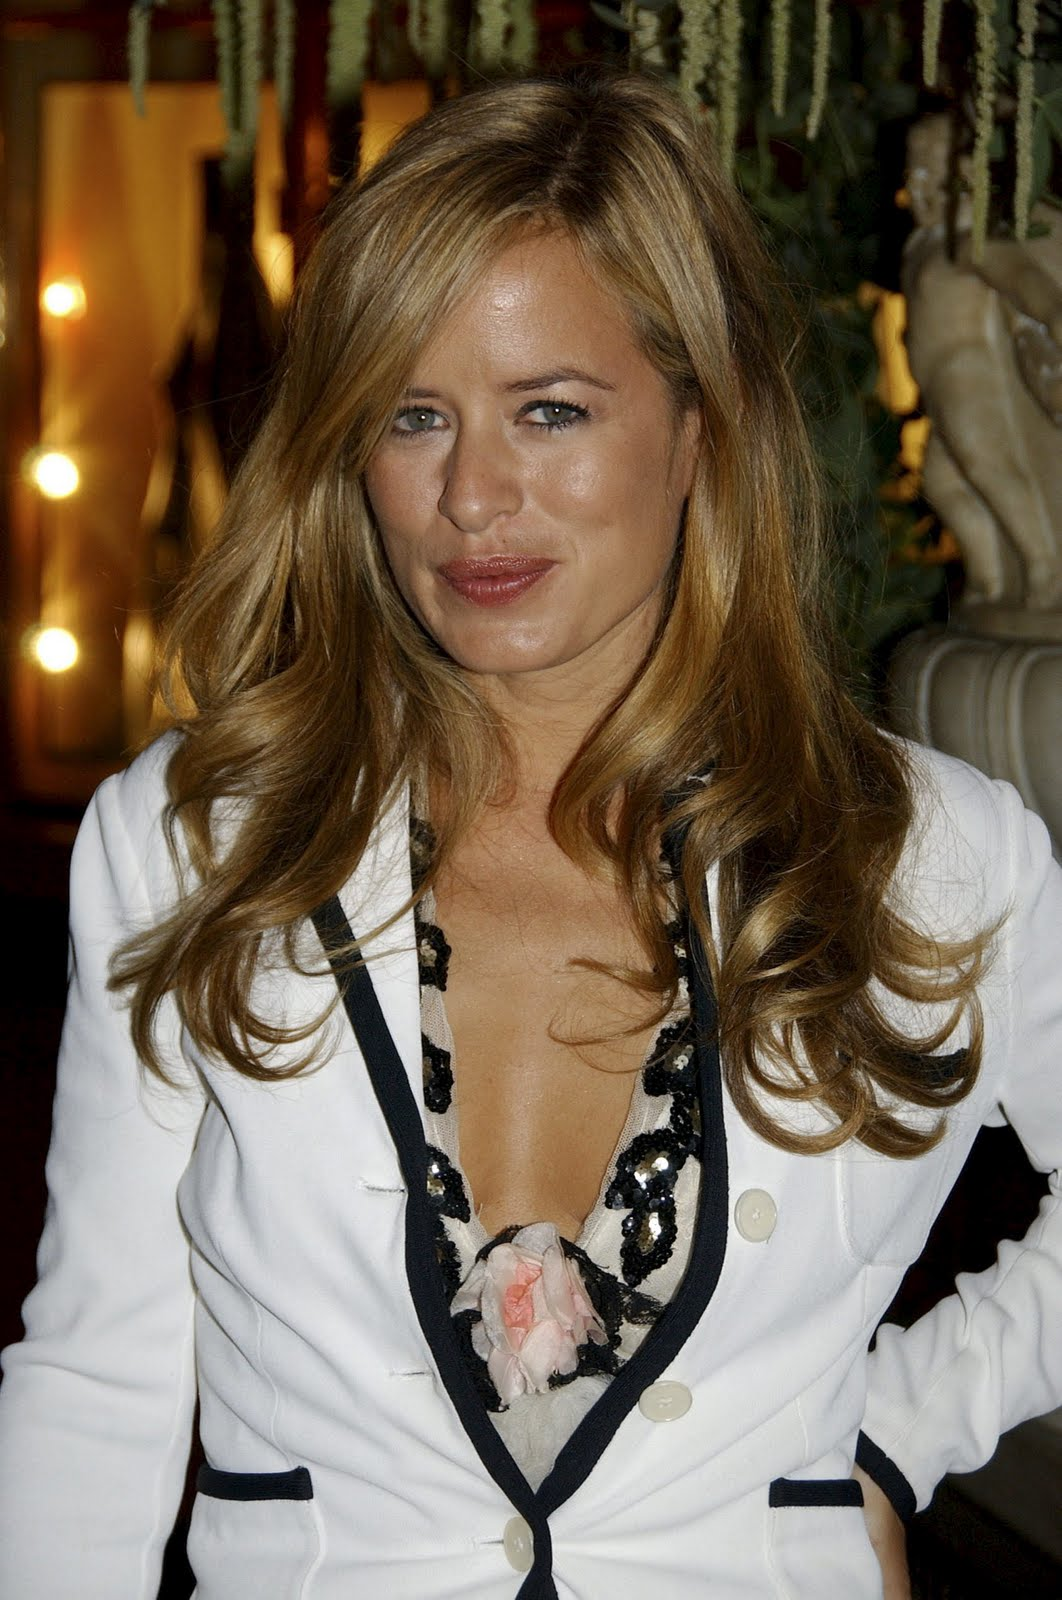 Jade Jagger nudes (15 foto and video), Topless, Leaked, Feet, bra 2018